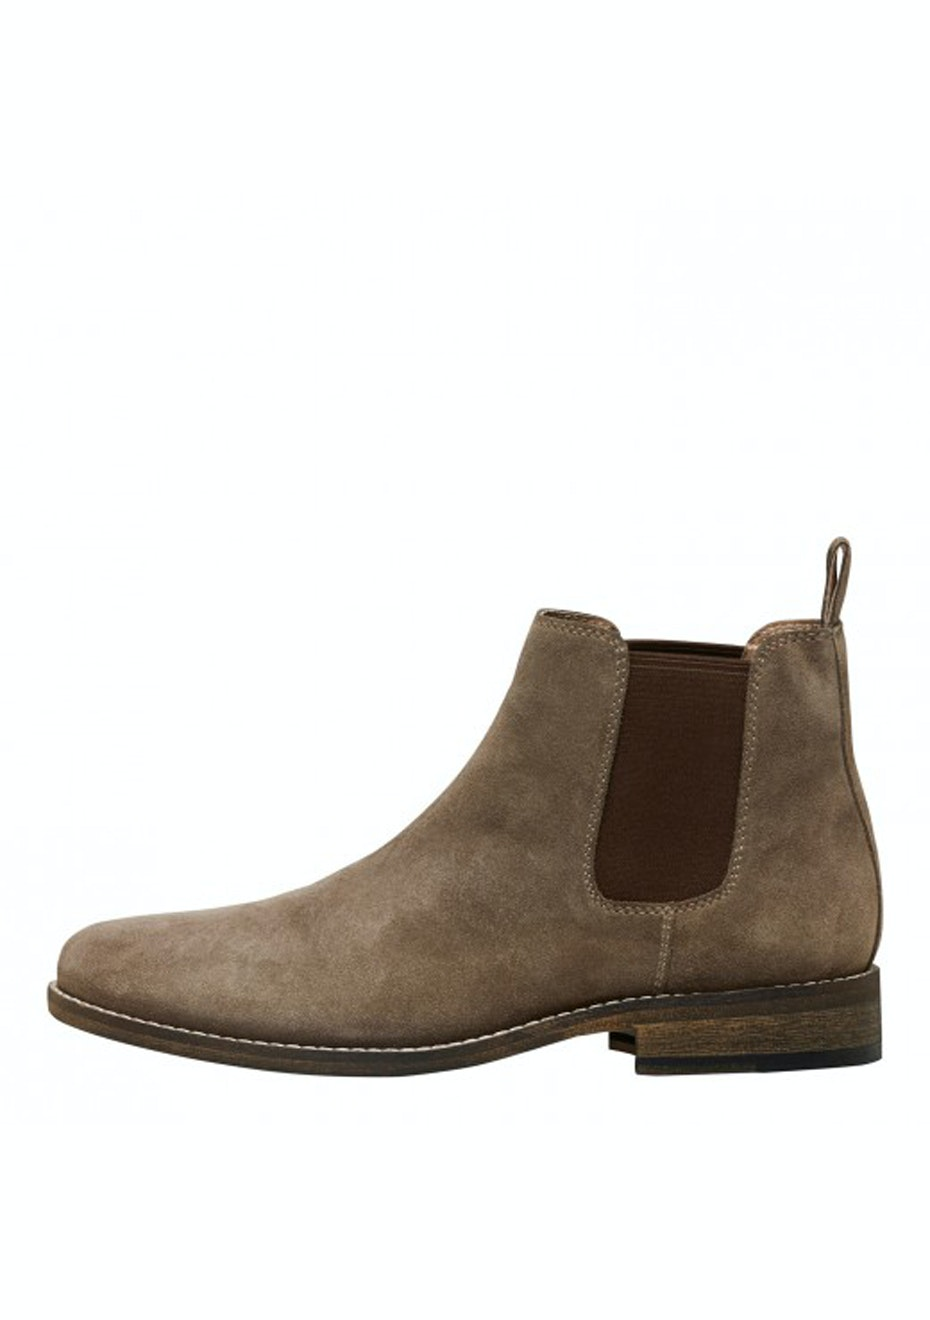 Windsor Smith - SAMUEL - MARON SUEDE